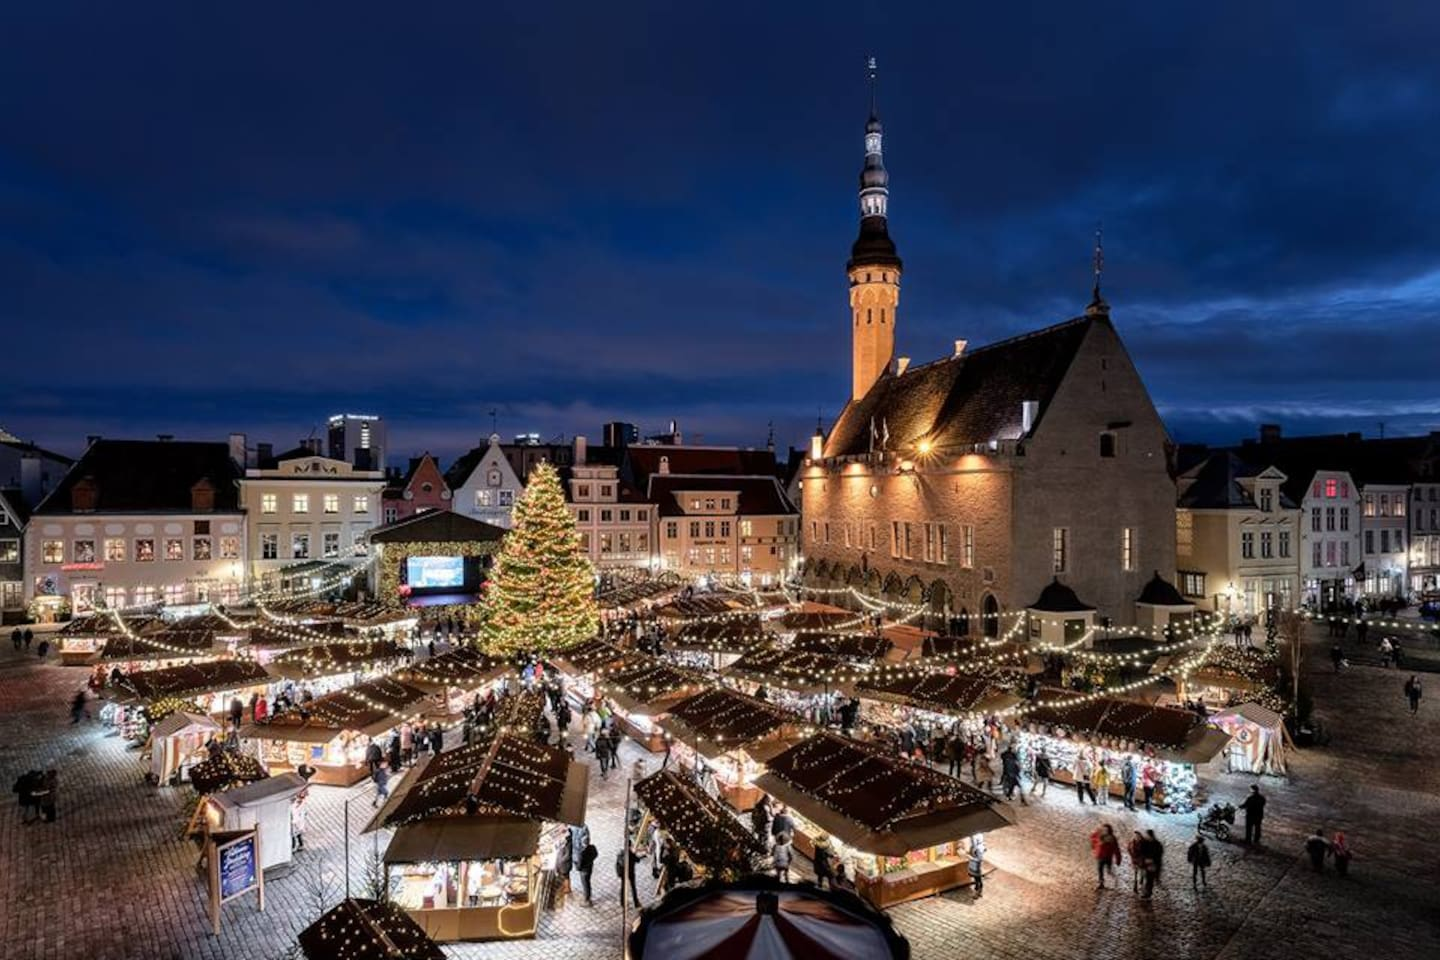 The best European Christmas Market open from 15th of November 2019 until 7th of Januar 2020